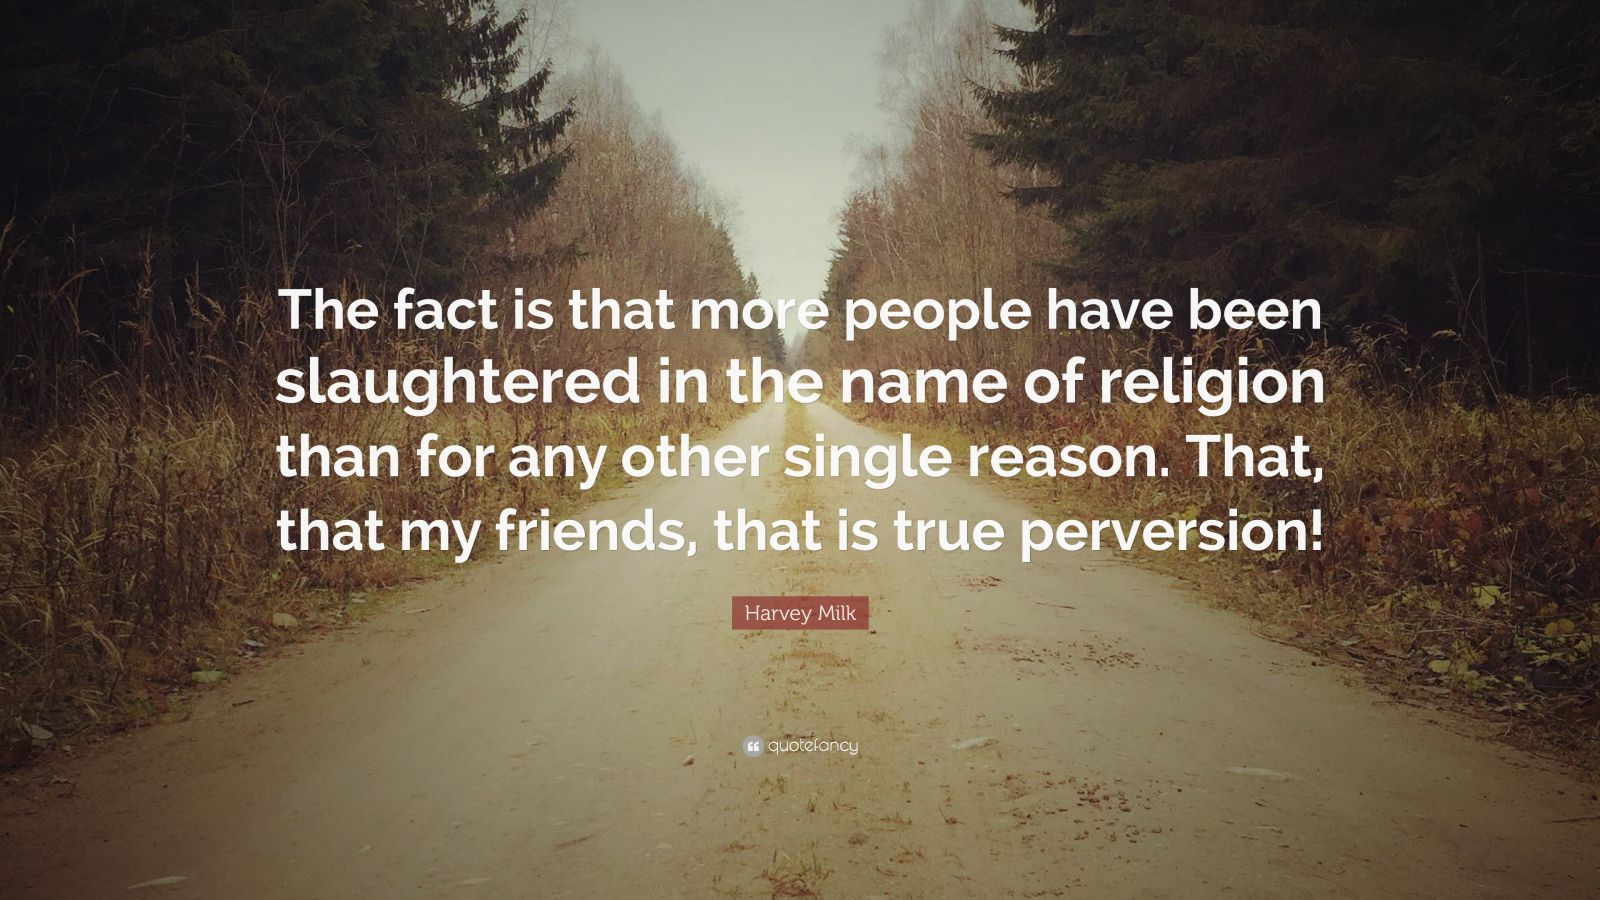 """Harvey Milk Quote: """"The fact is that more people have been slaughtered in the name of religion than for any other single reason. That, that my friends, that is true perversion!"""""""